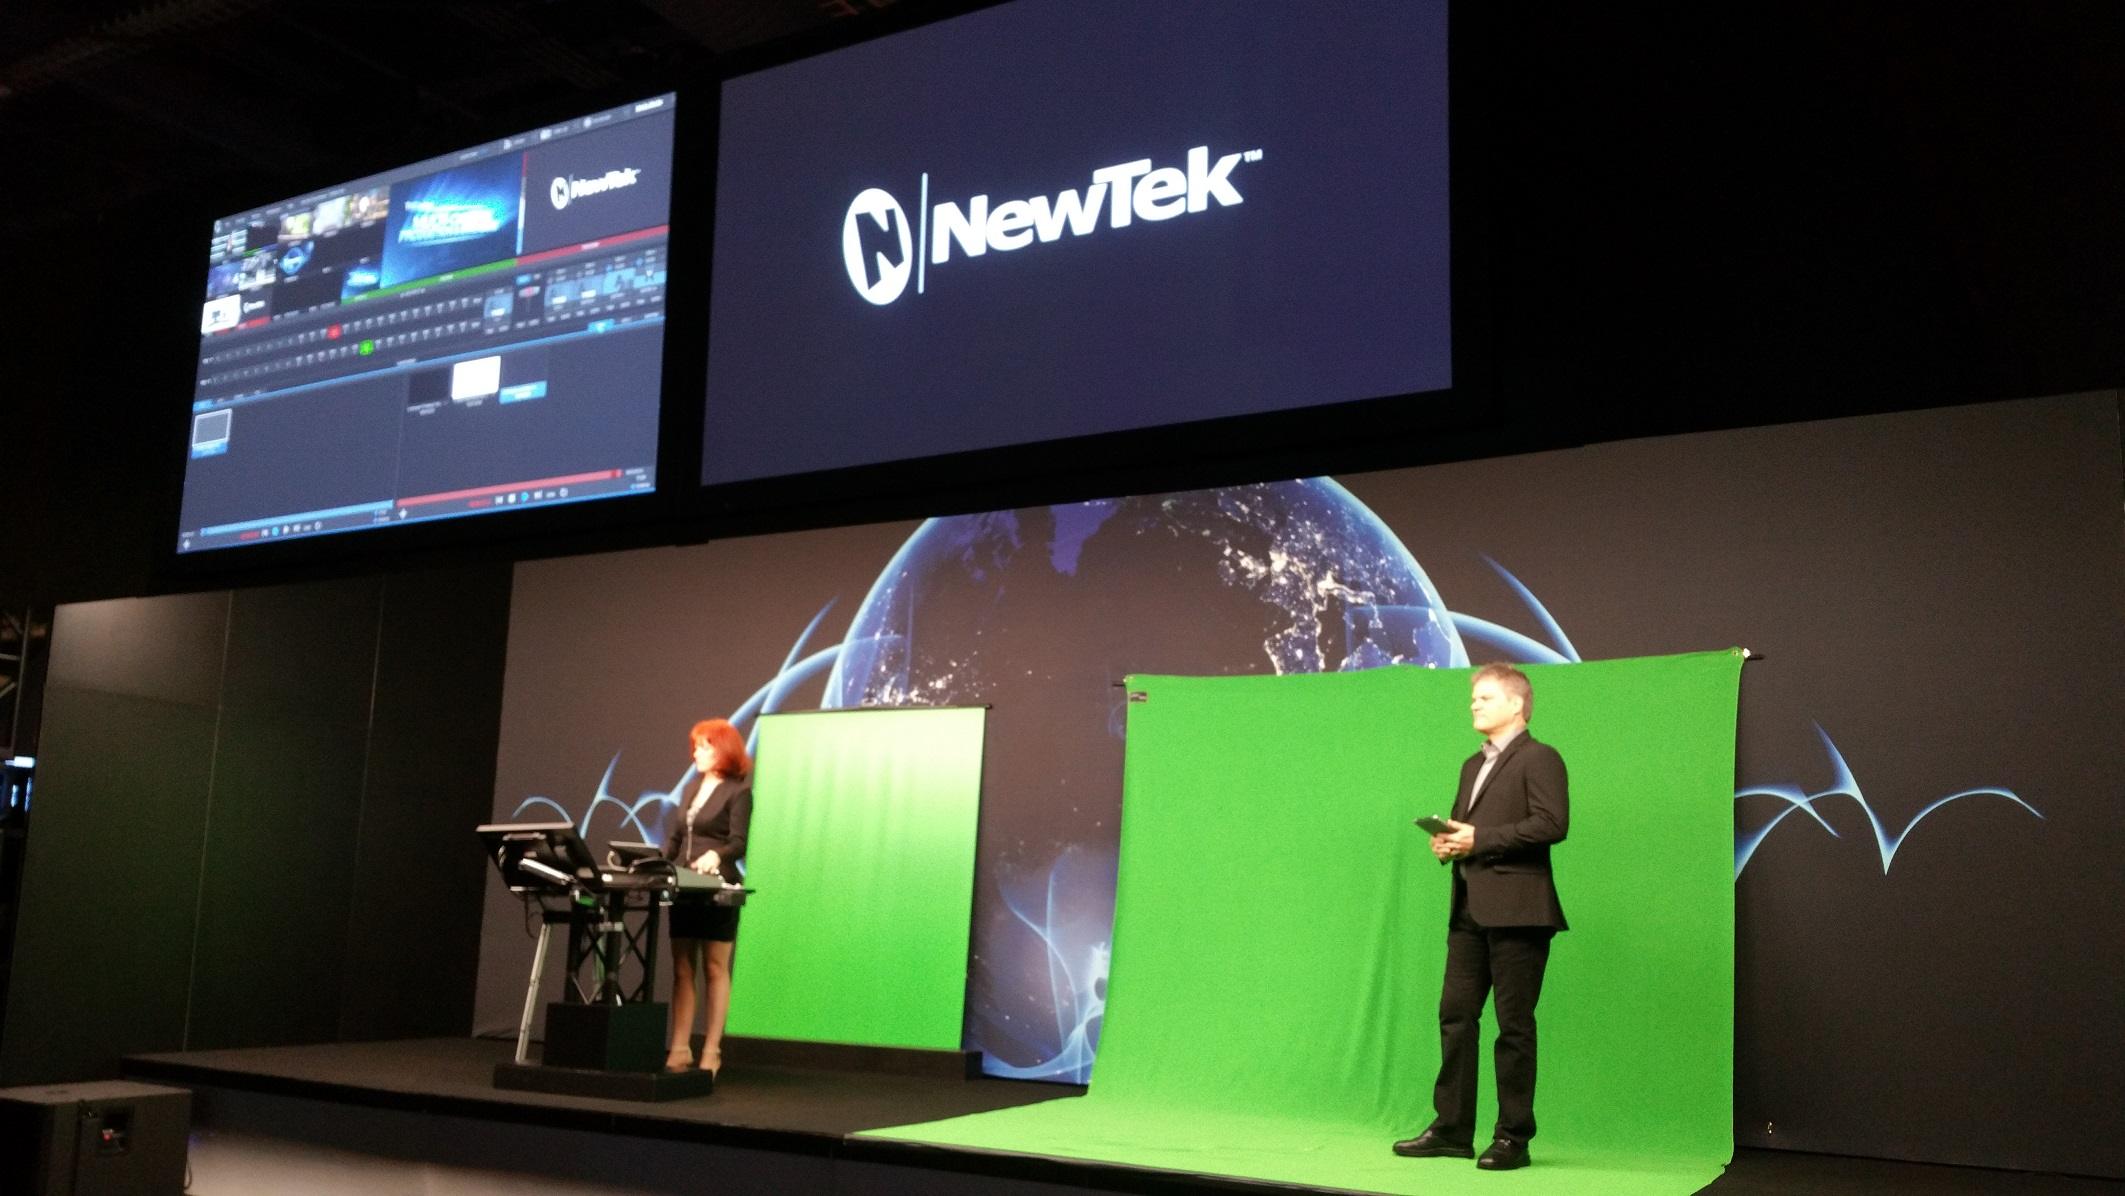 The legendary Kiki Stockhammer and Rex Olson opened NewTek's NAB 2015 with the first presentation of the day.